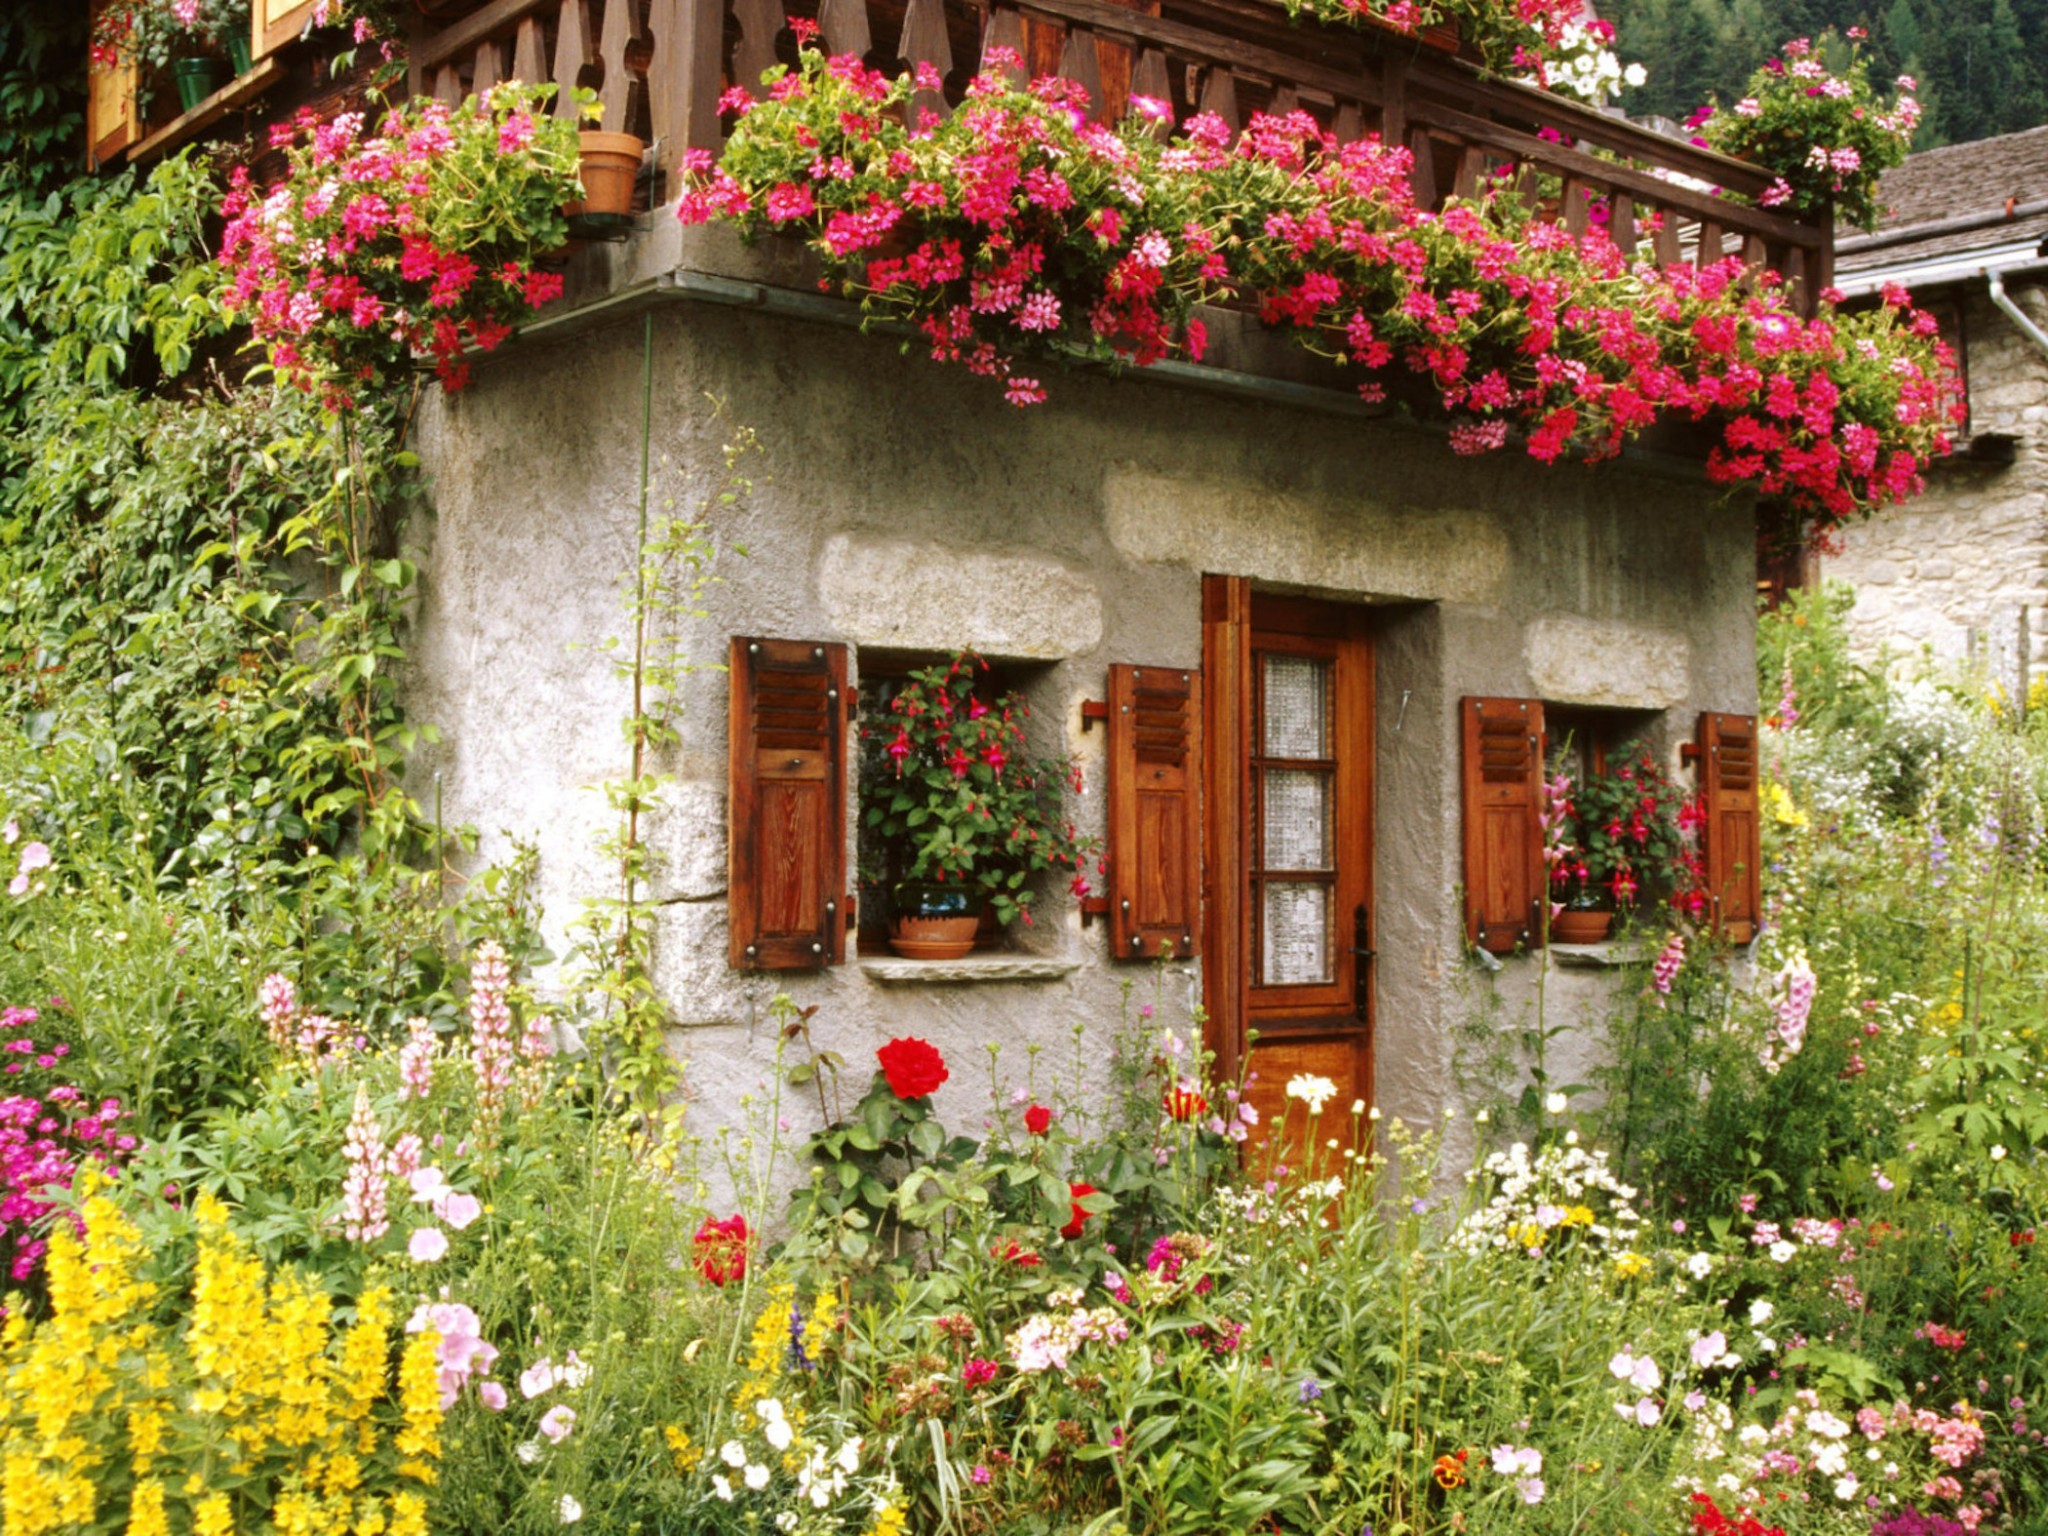 Lovely english cottage garden wallpaper free downloads Beautiful homes and gardens